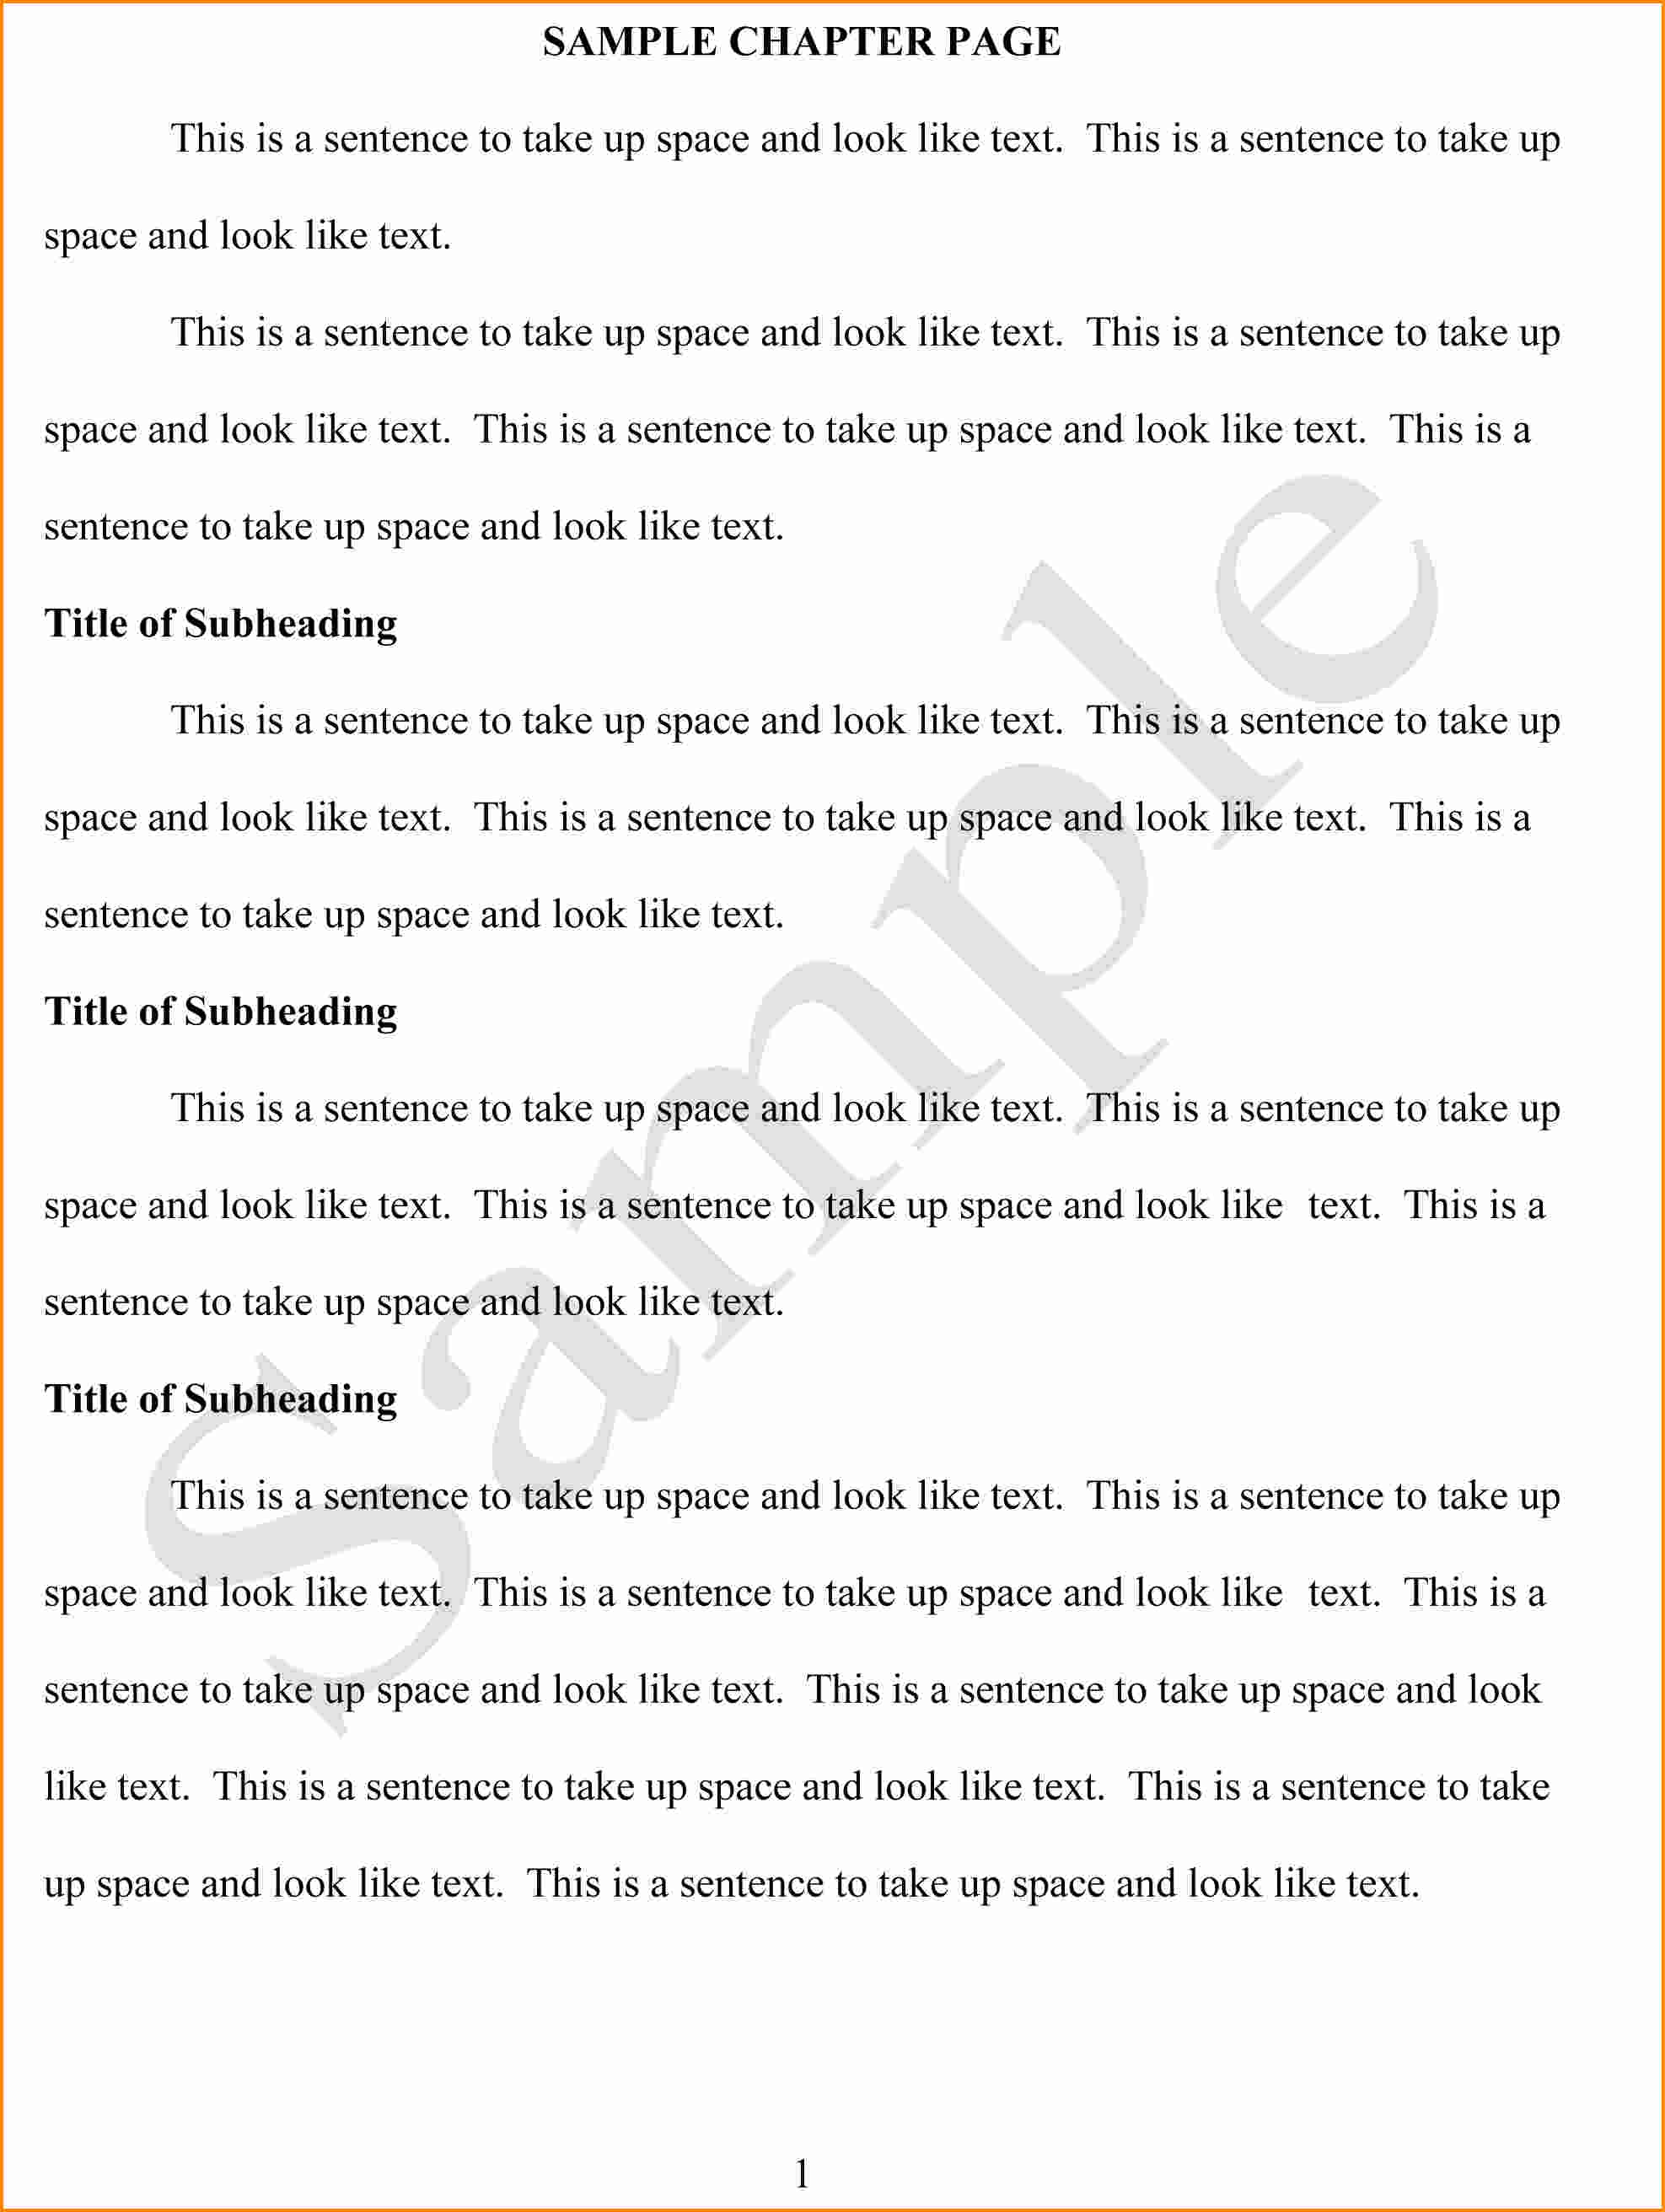 020 Research Paper How To Start Frightening Paragraph Your First Body In A Conclusion Full